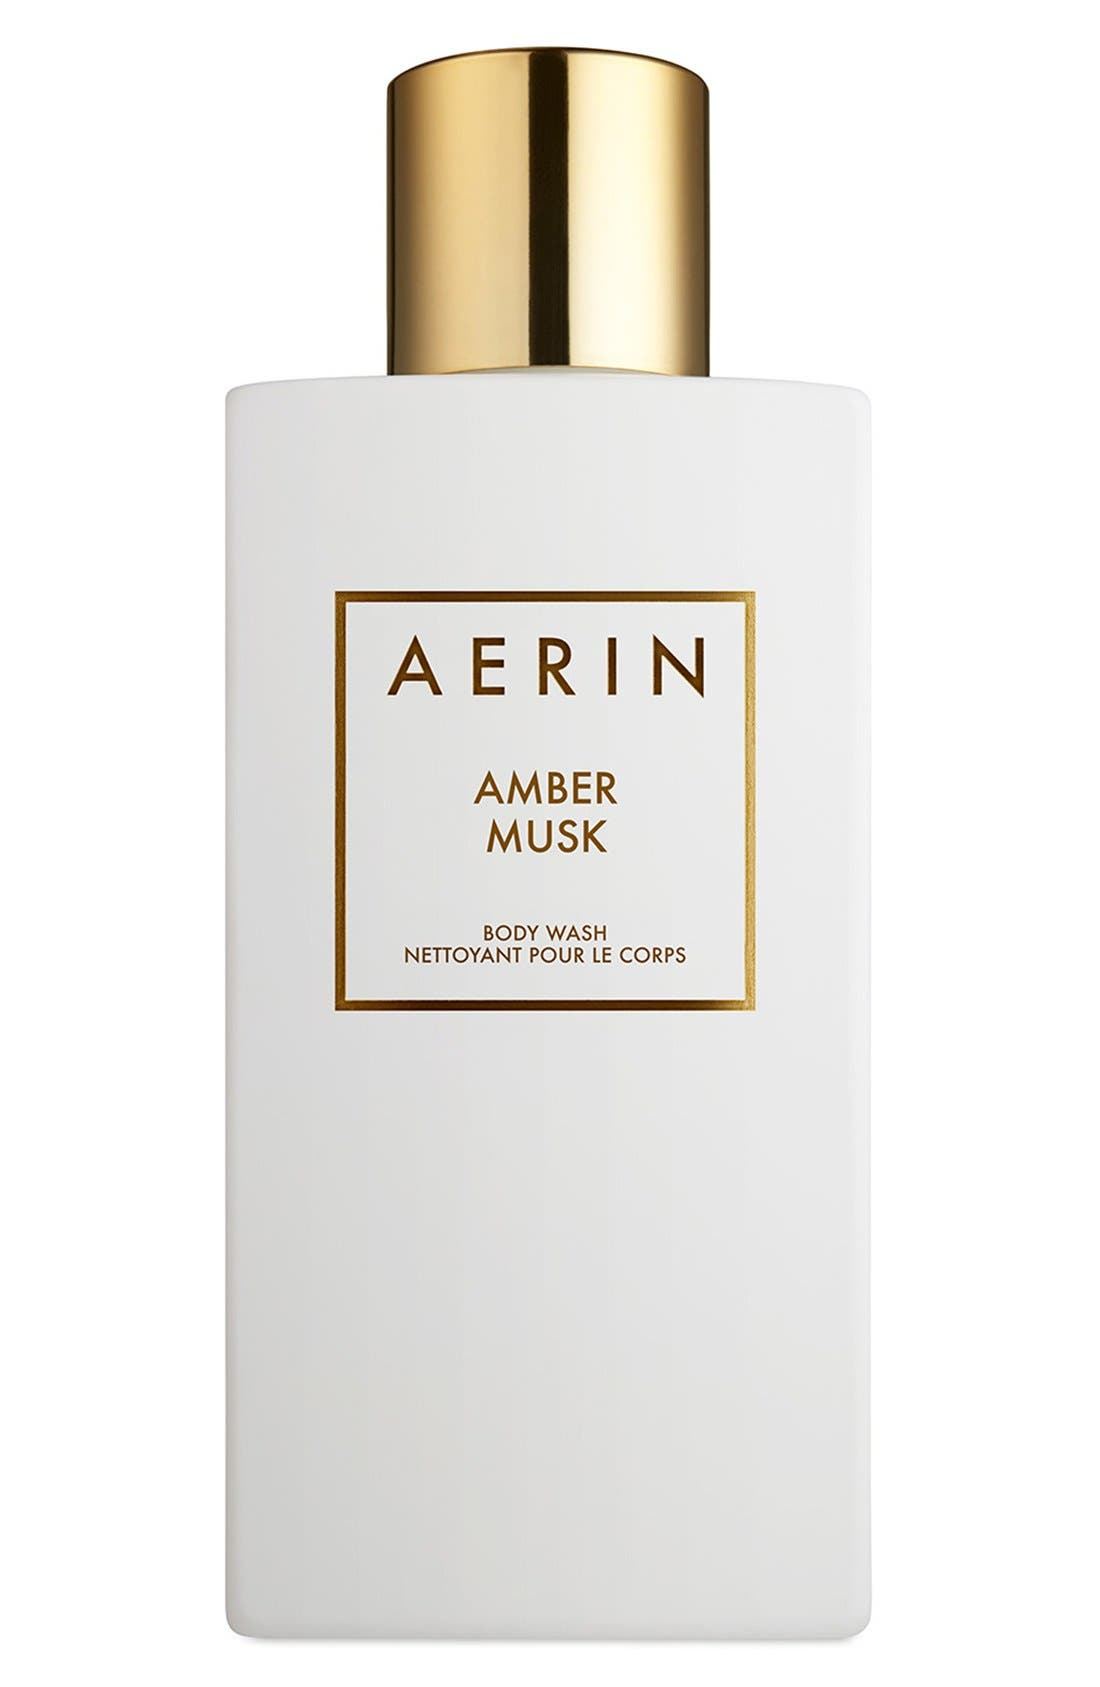 AERIN Beauty 'Amber Musk' Body Wash